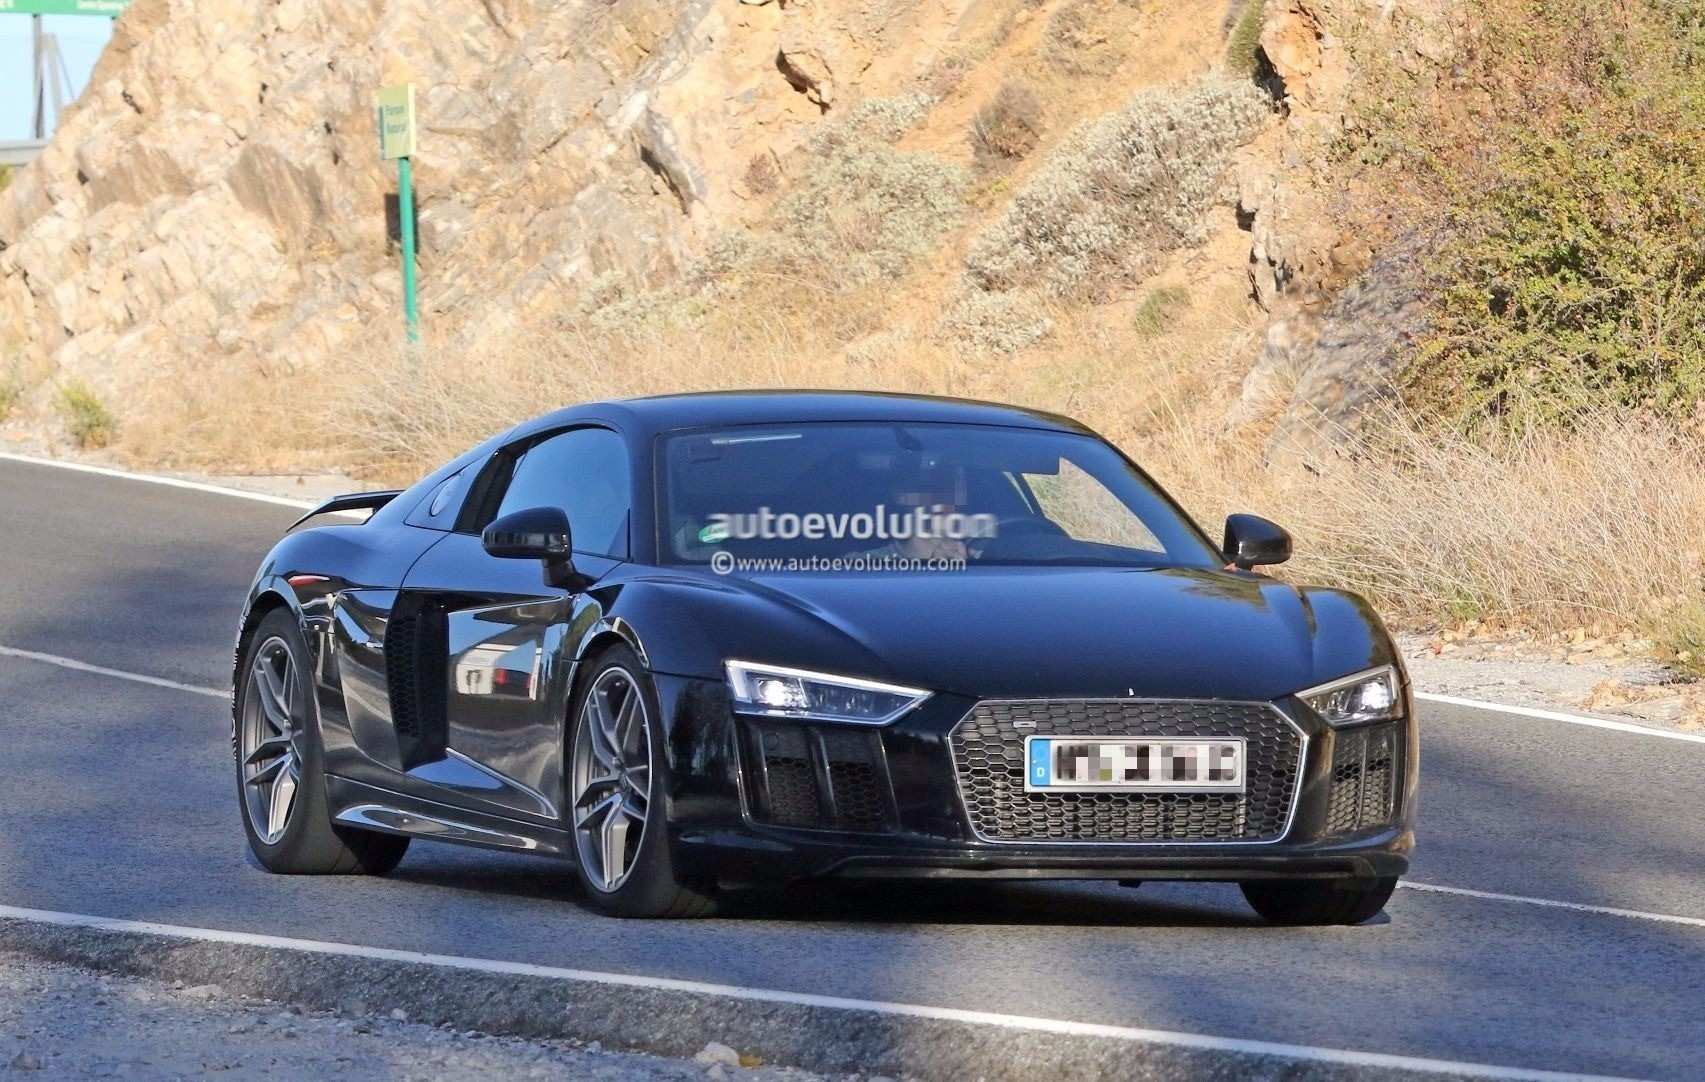 16 All New The R8 Audi 2019 Review And Price Interior for The R8 Audi 2019 Review And Price